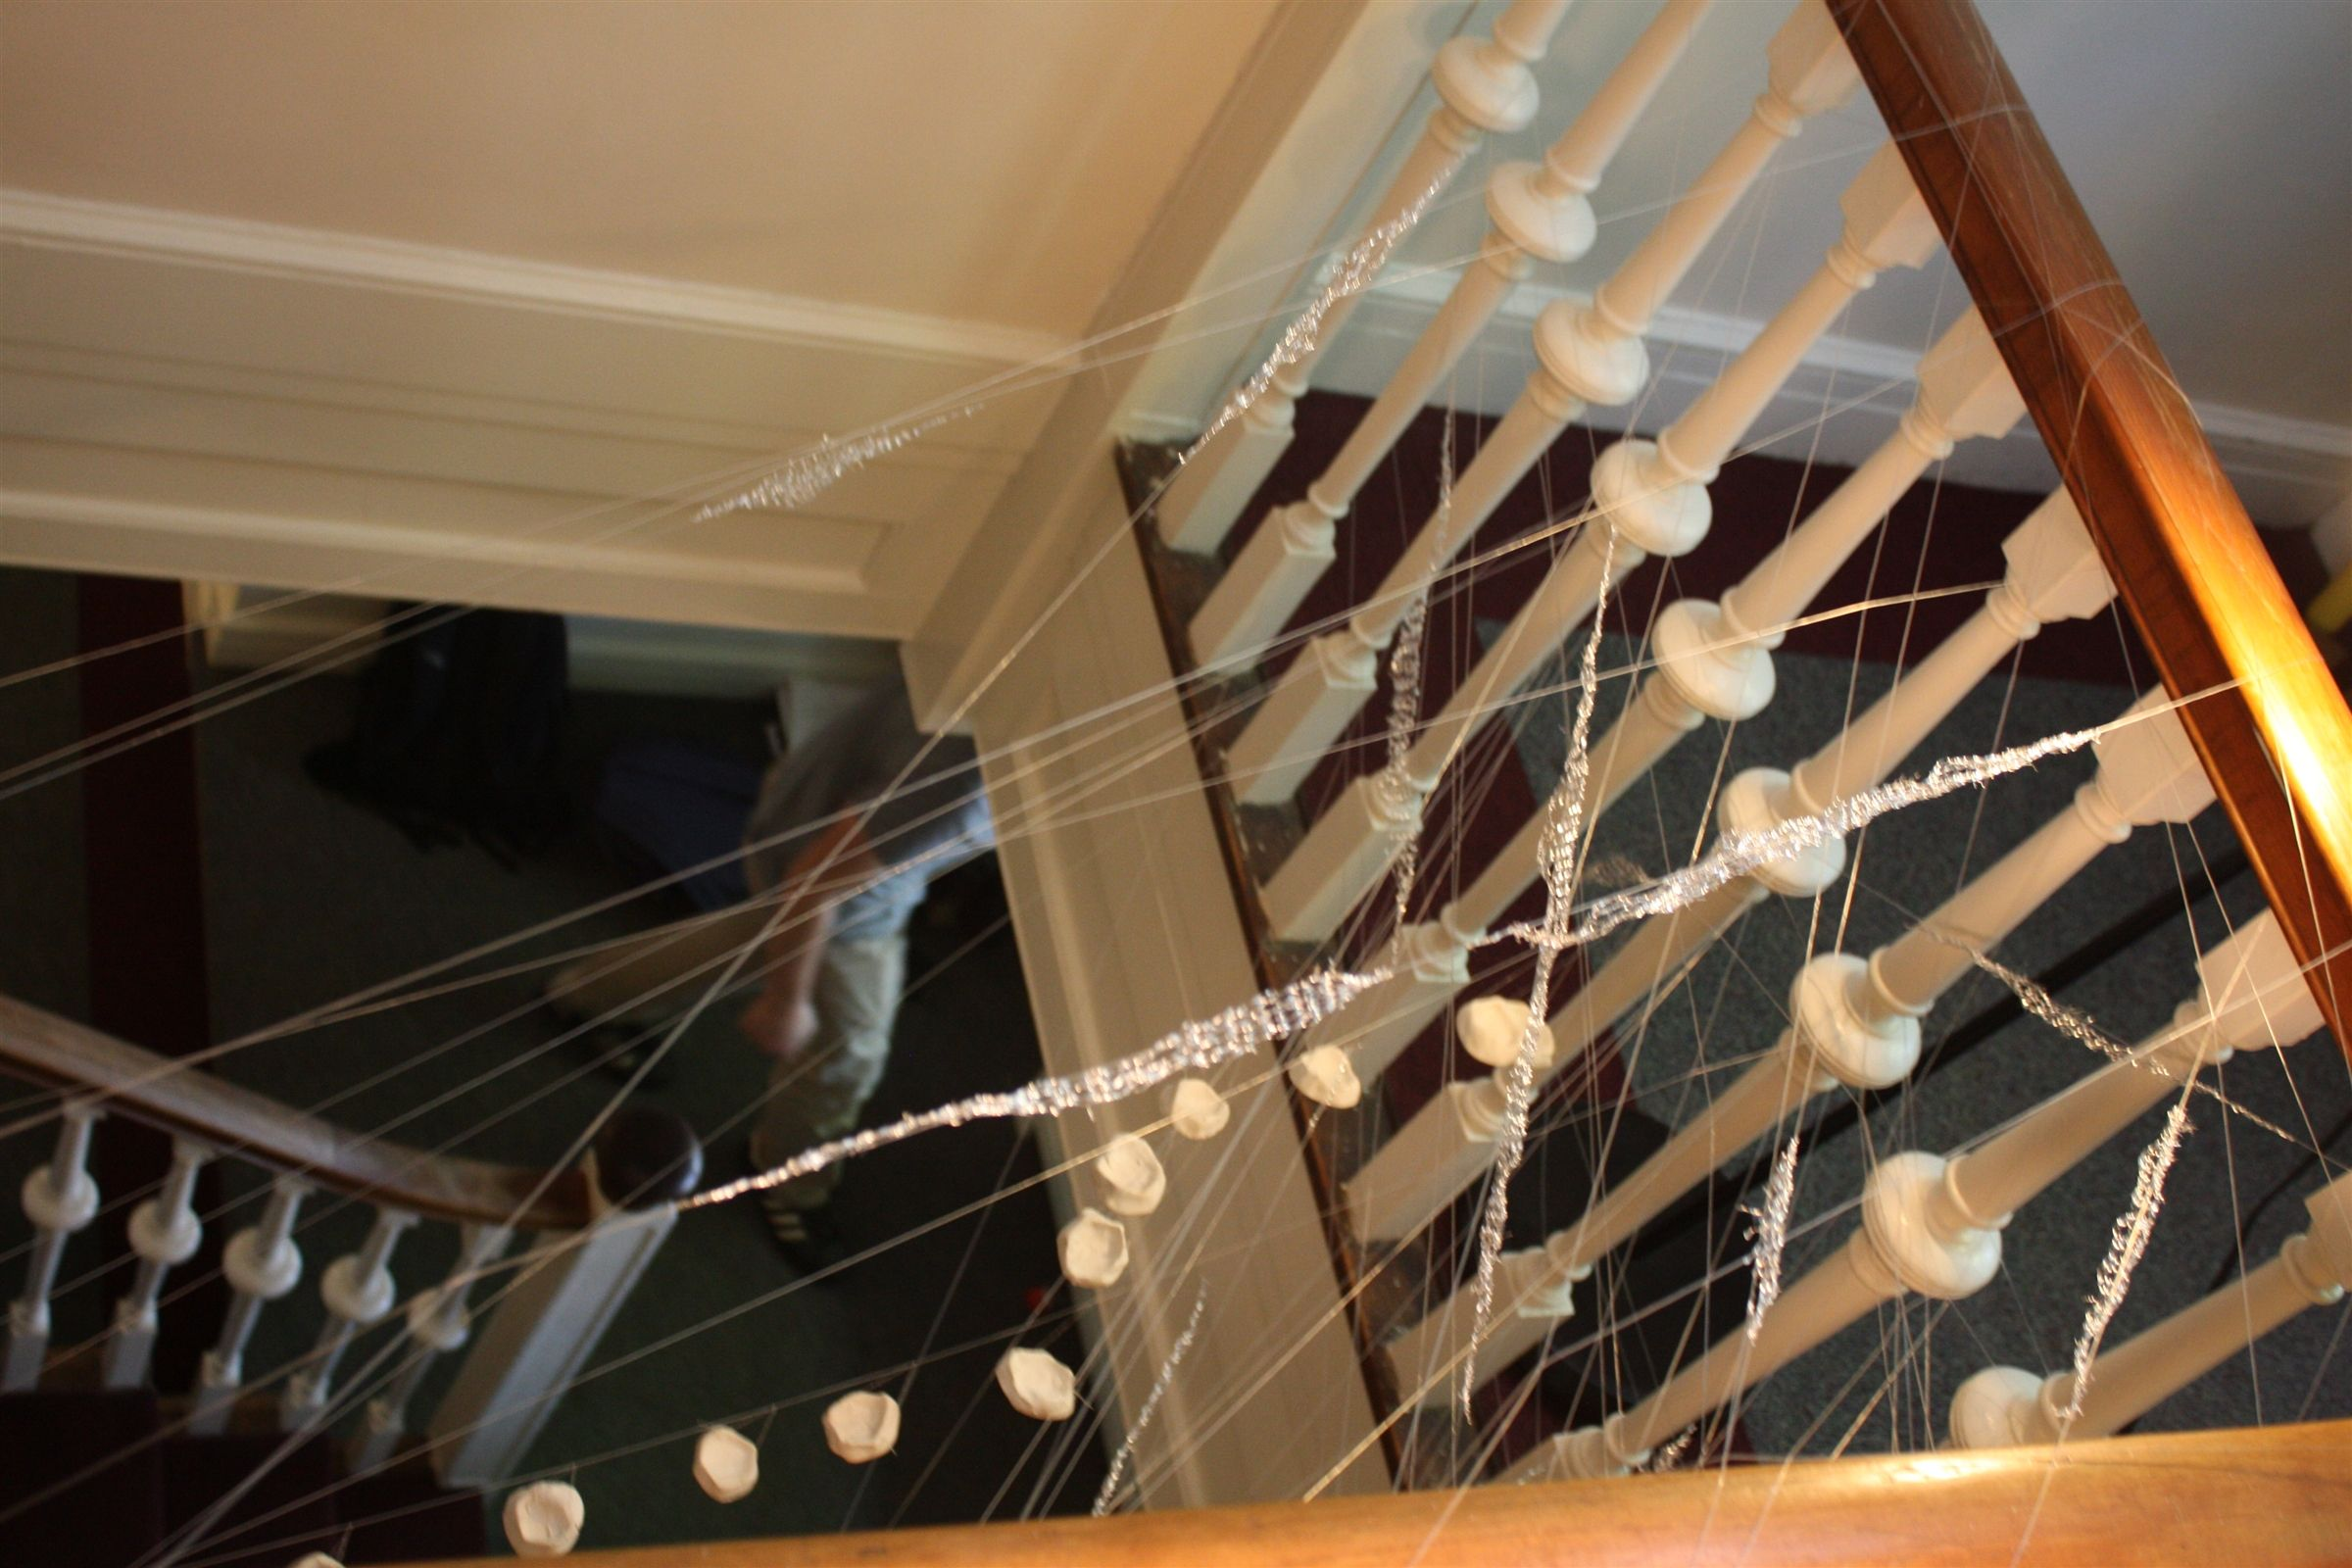 Leah created a mobile in an open dorm stairwell to portray the movement and beauty of a suspension bridge.